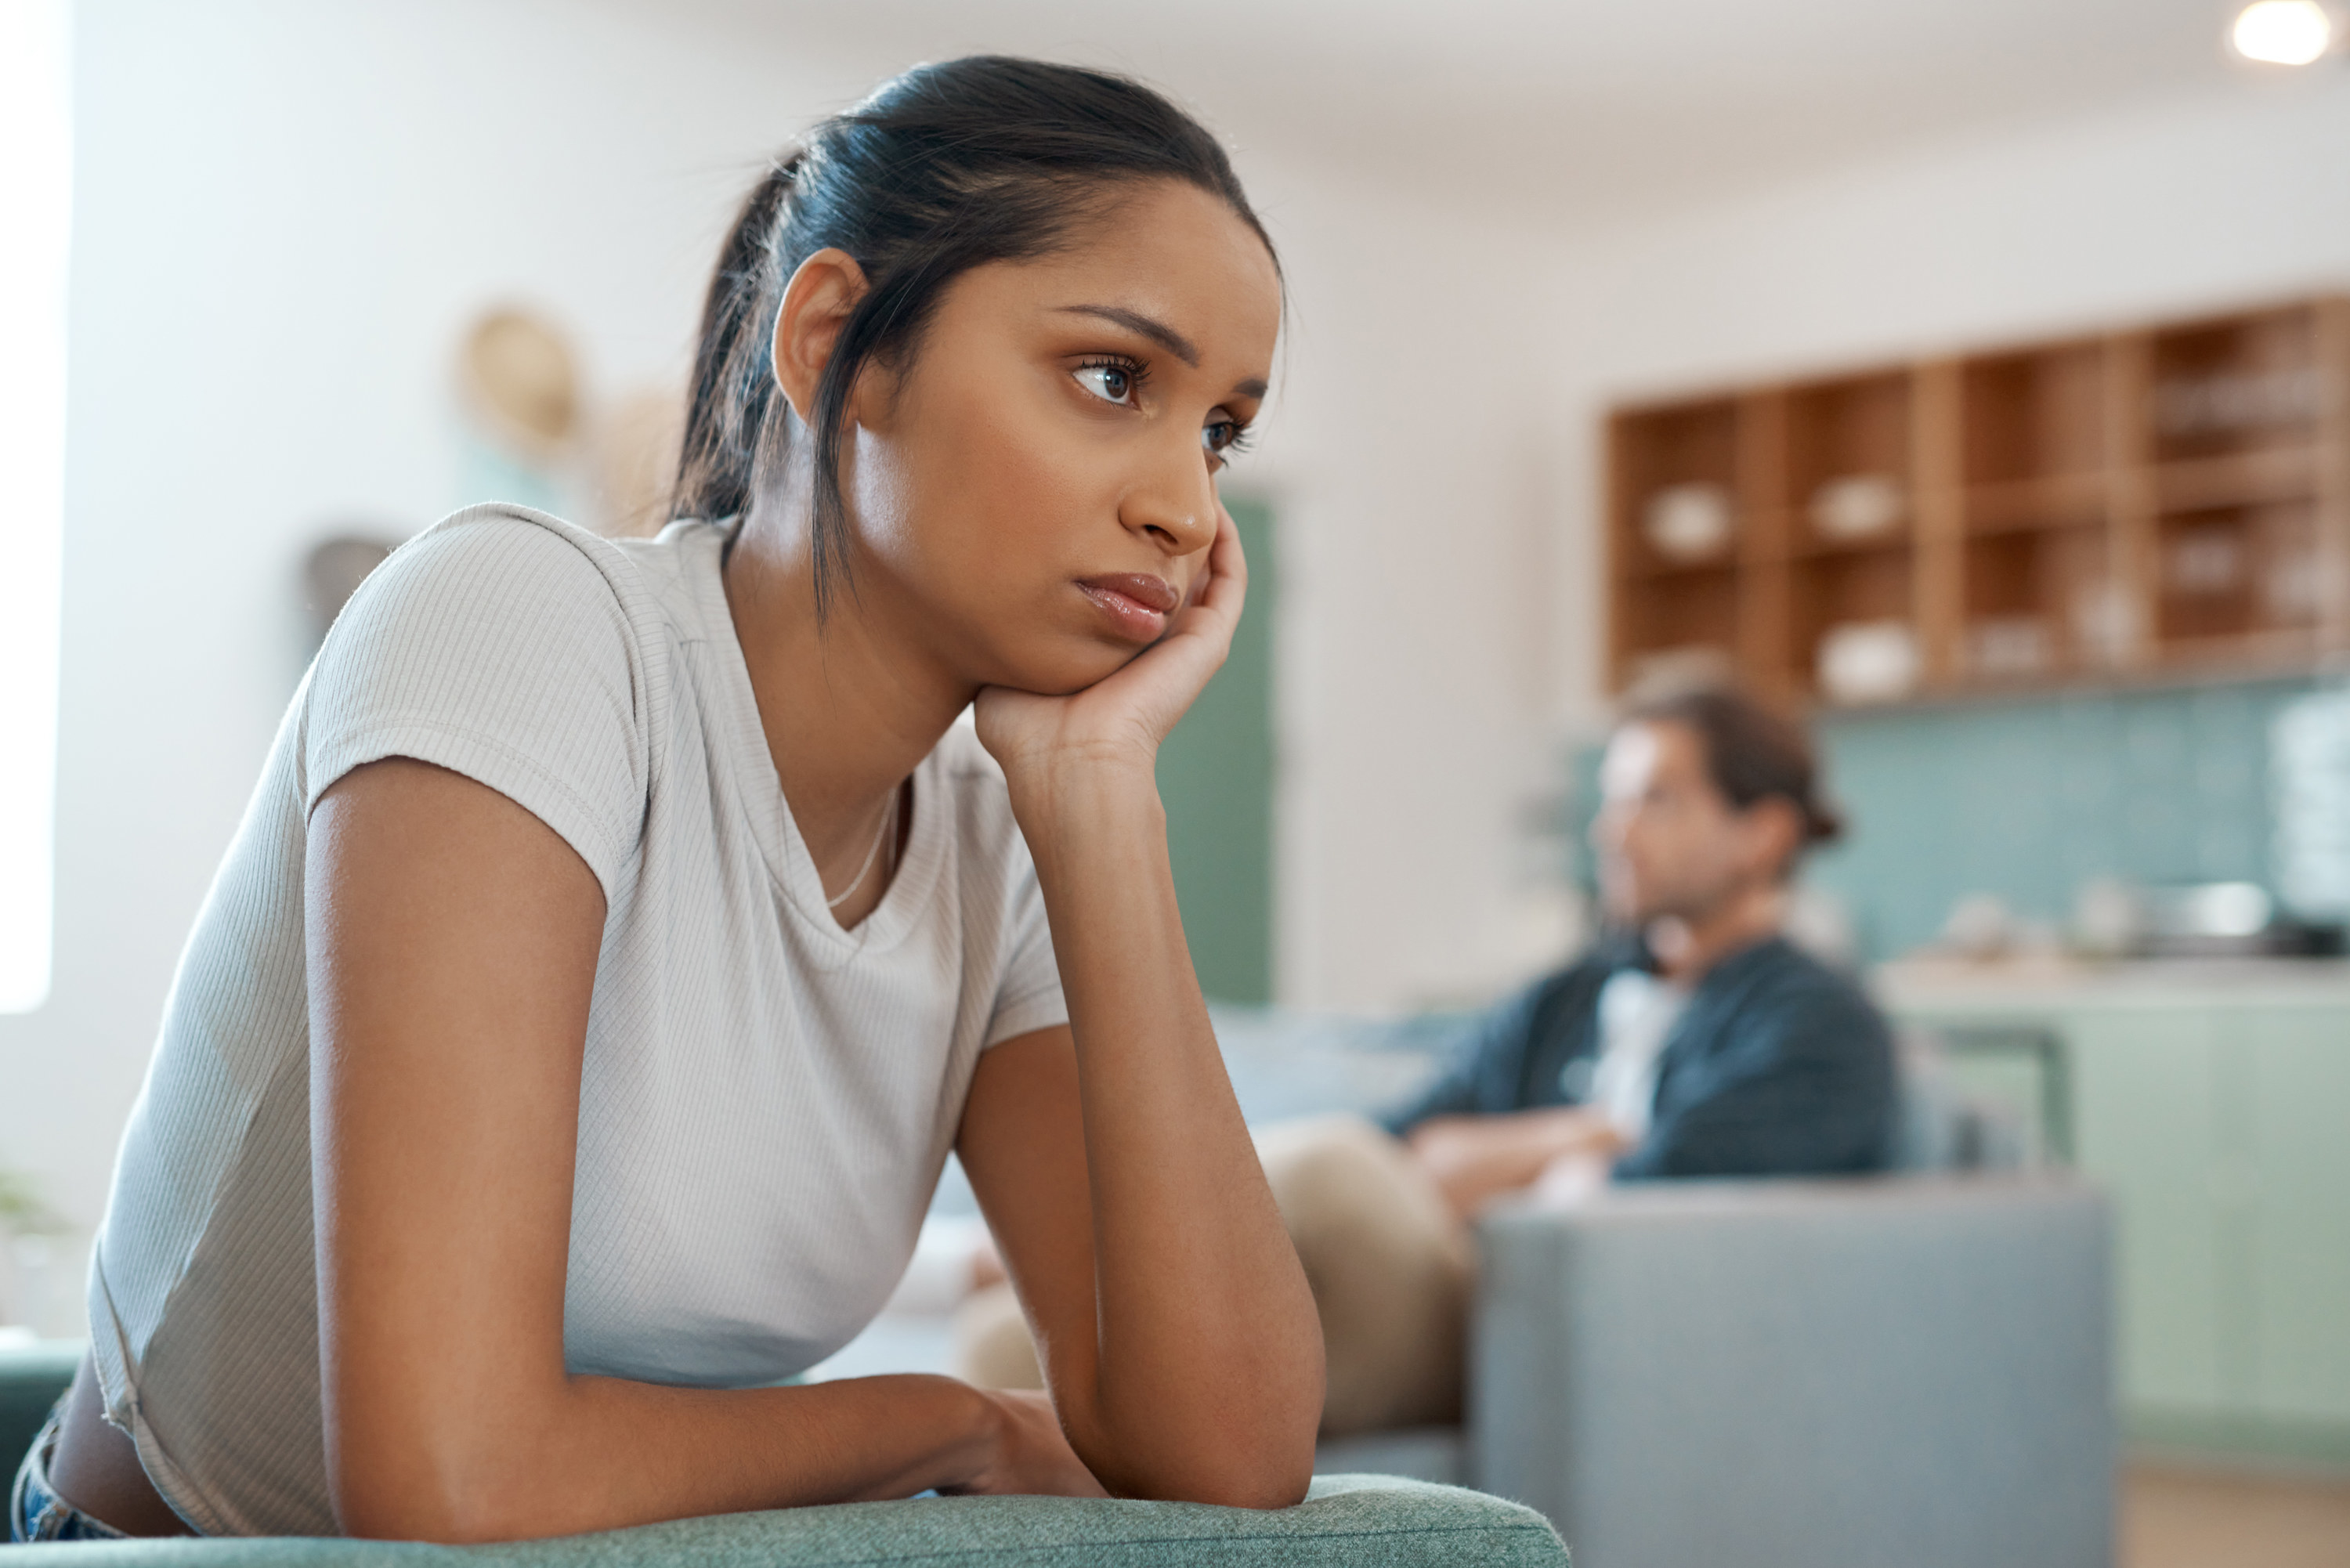 unhappy woman in relationship